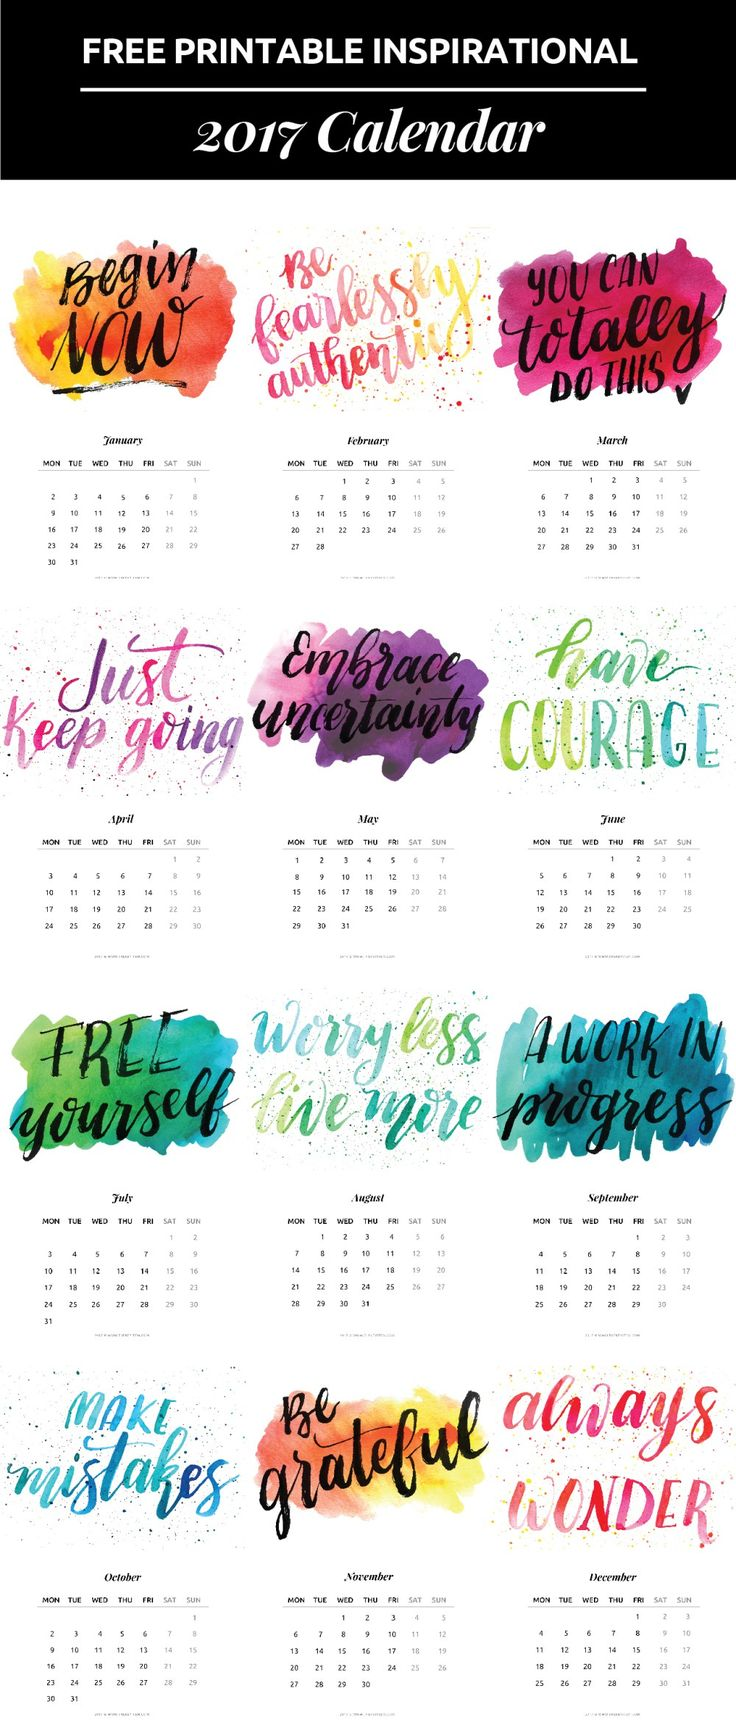 I have created a free 2017 calendar with inspiration quotes for entrepreneurs. Print this easily and use it to keep yourself organized the whole year.